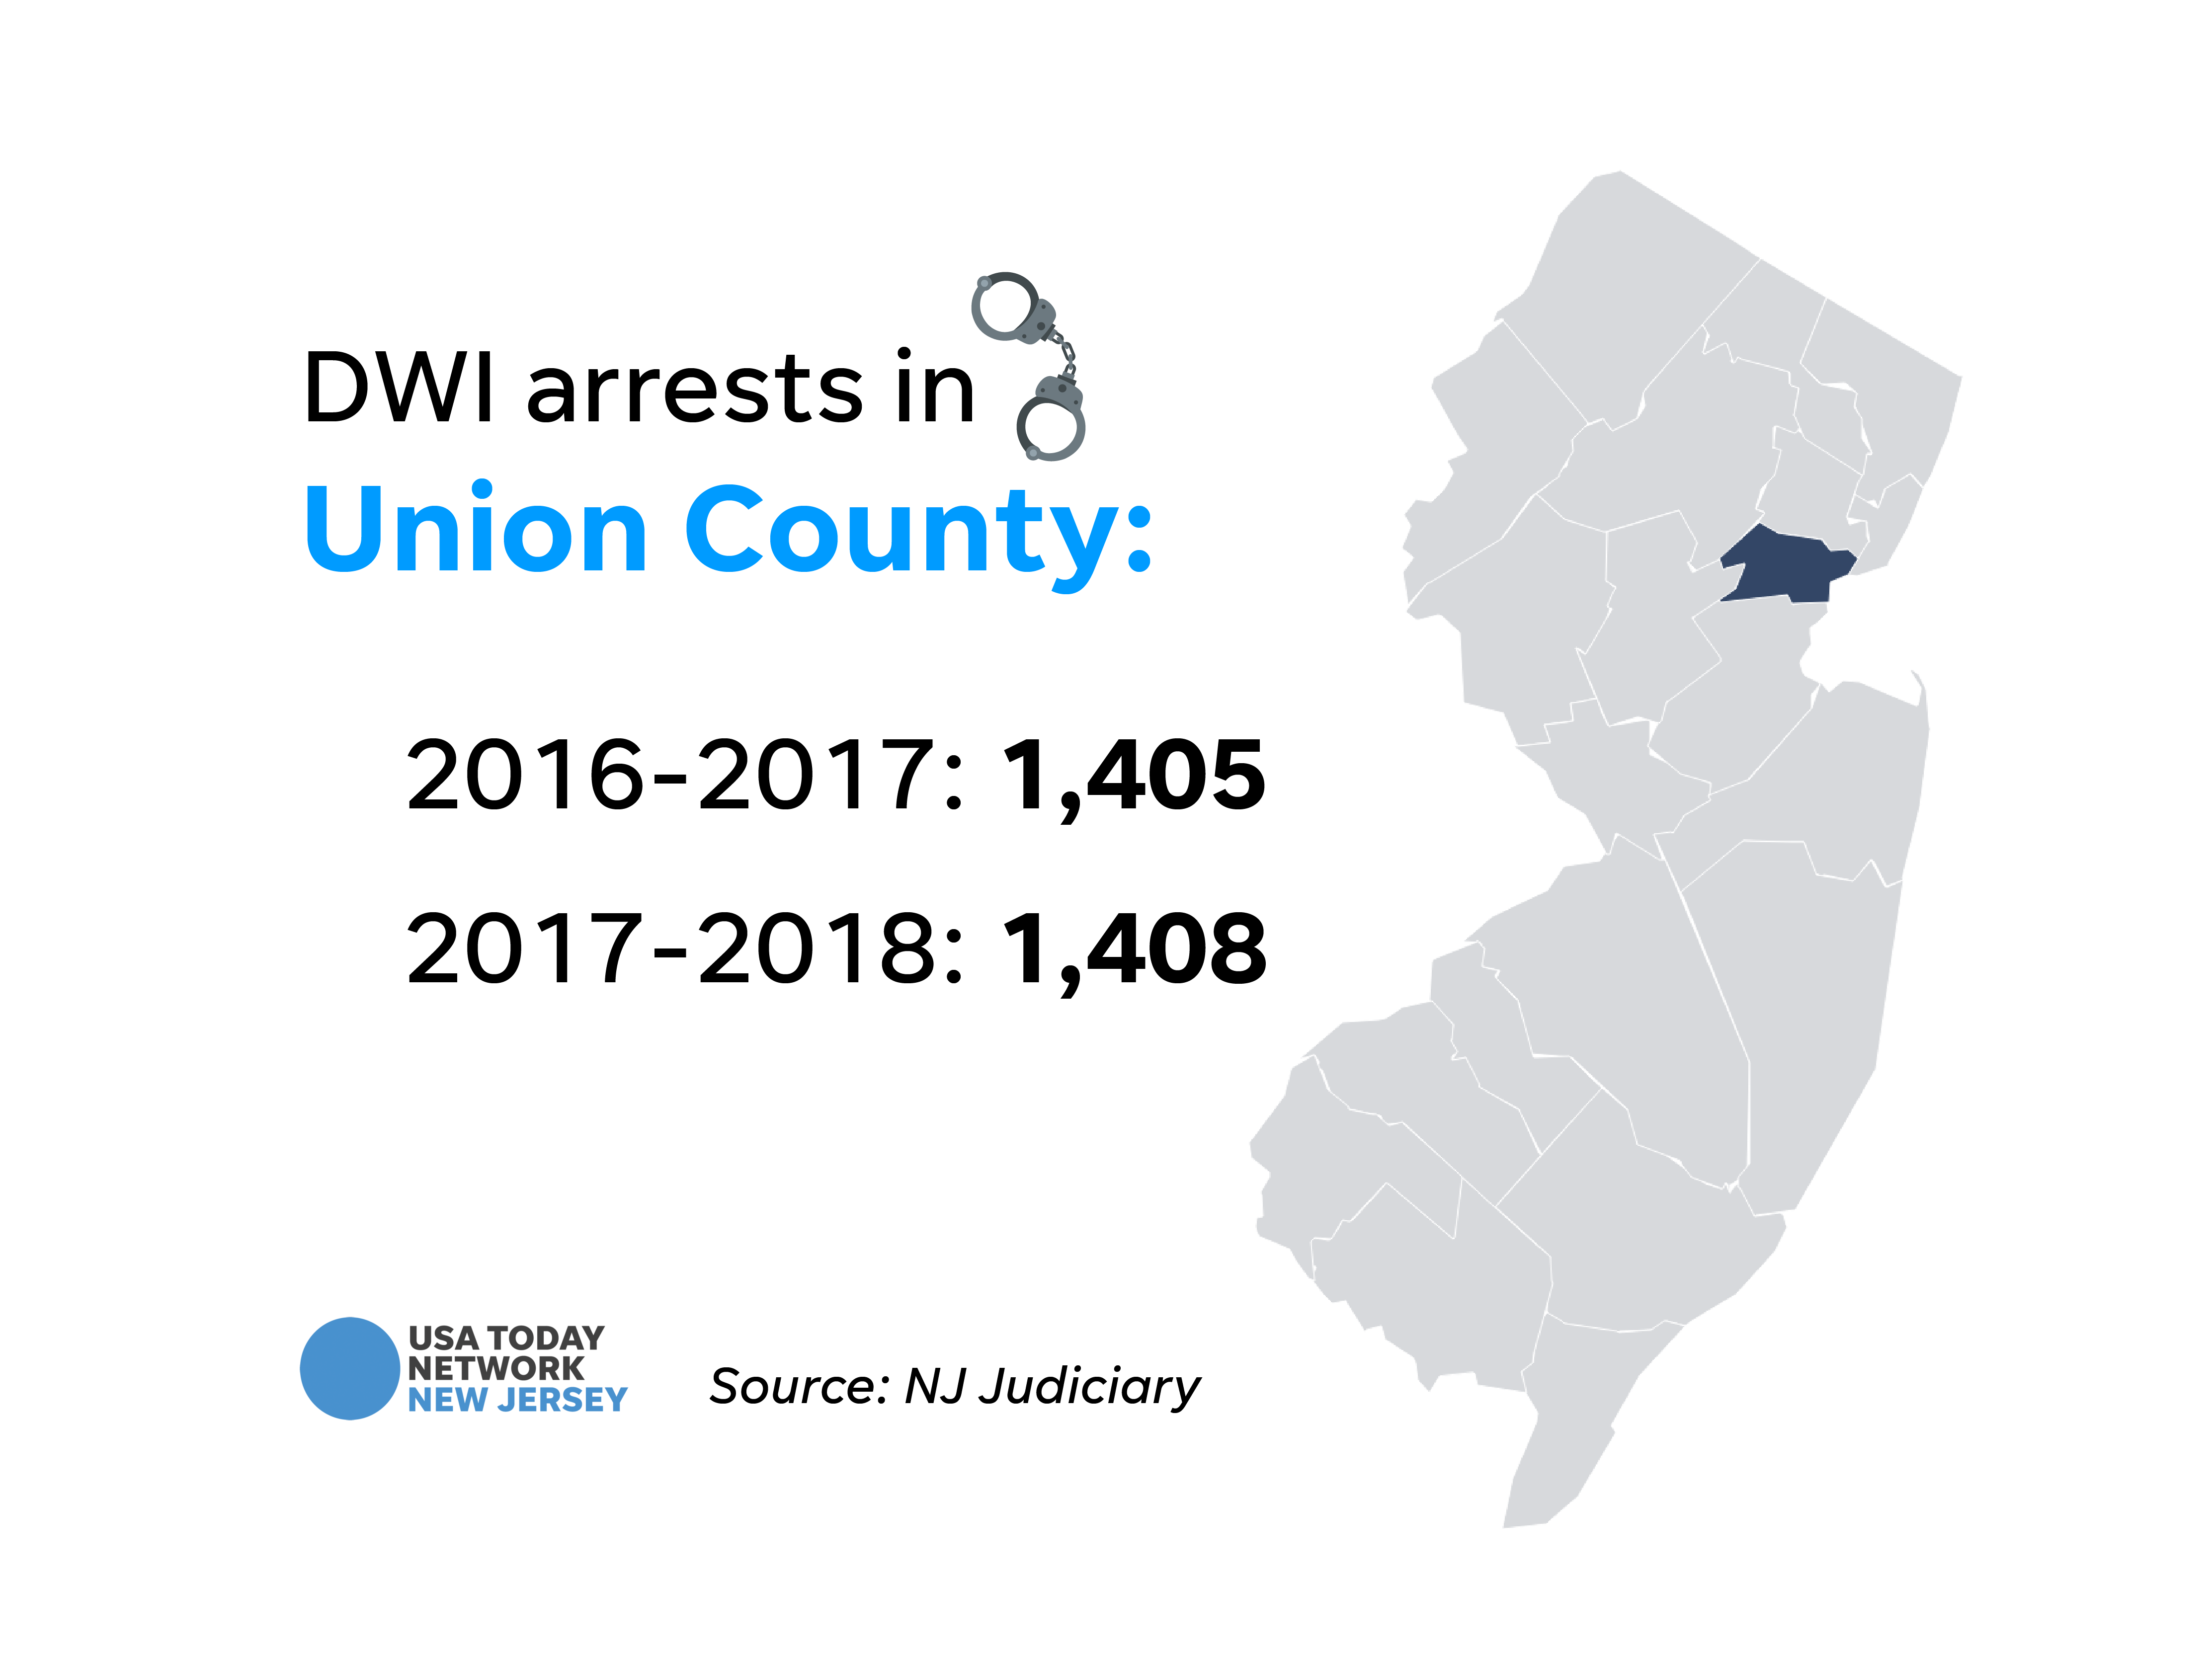 DWI arrests in Union County